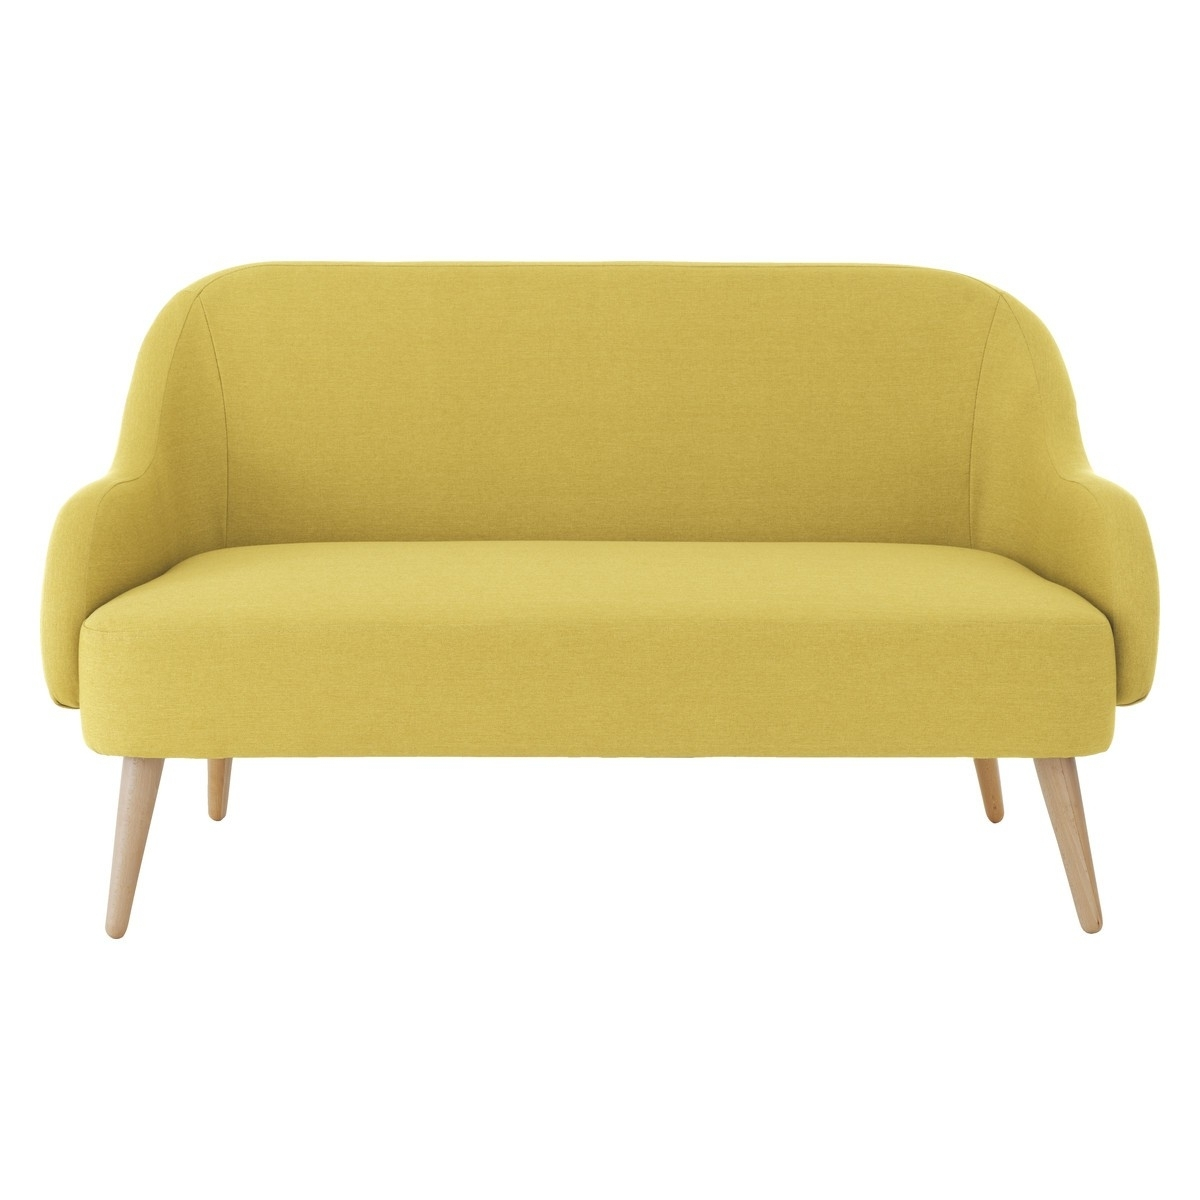 Yellow Fabric, Sofa (View 5 of 15)